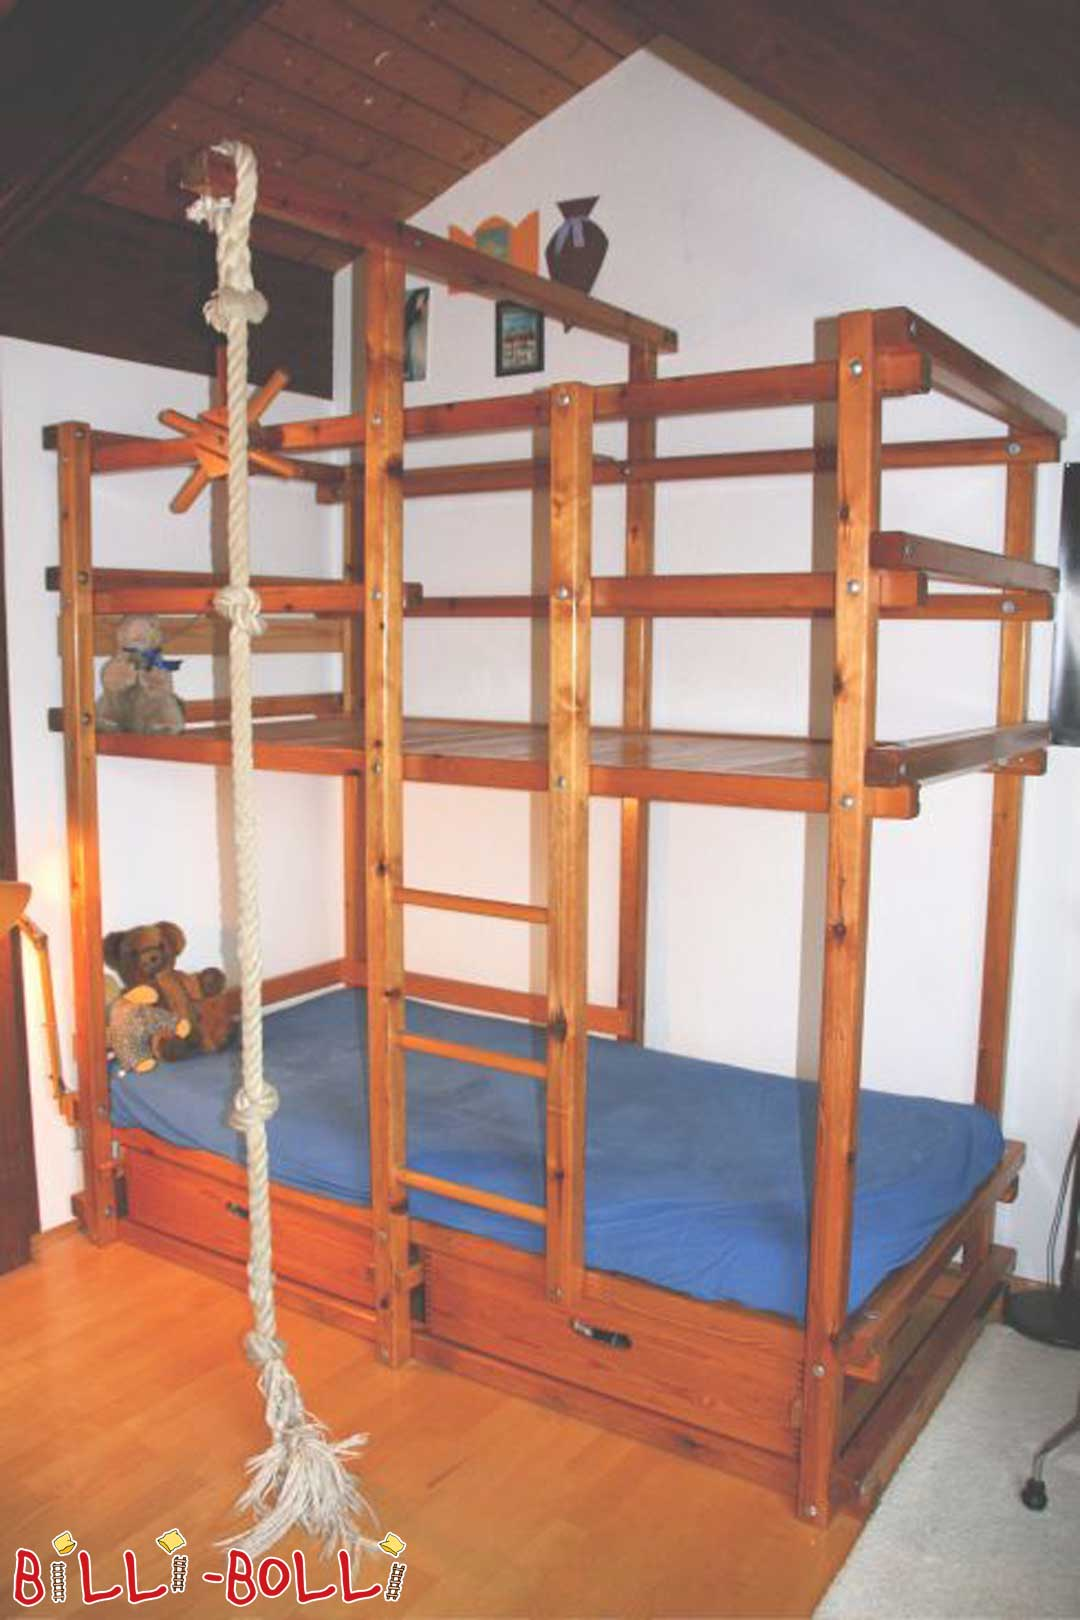 Original Gullibo Pirate Bunk Bed (second hand bunk bed)